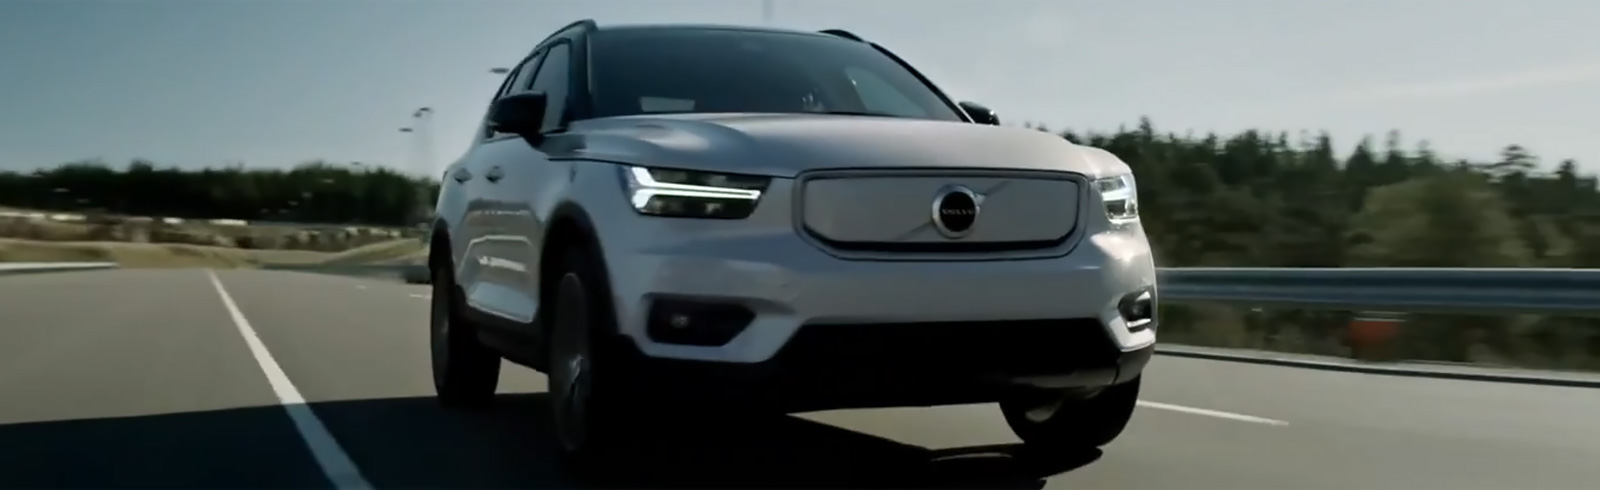 Volvo XC40 Recharge is official with a 78 kWh battery